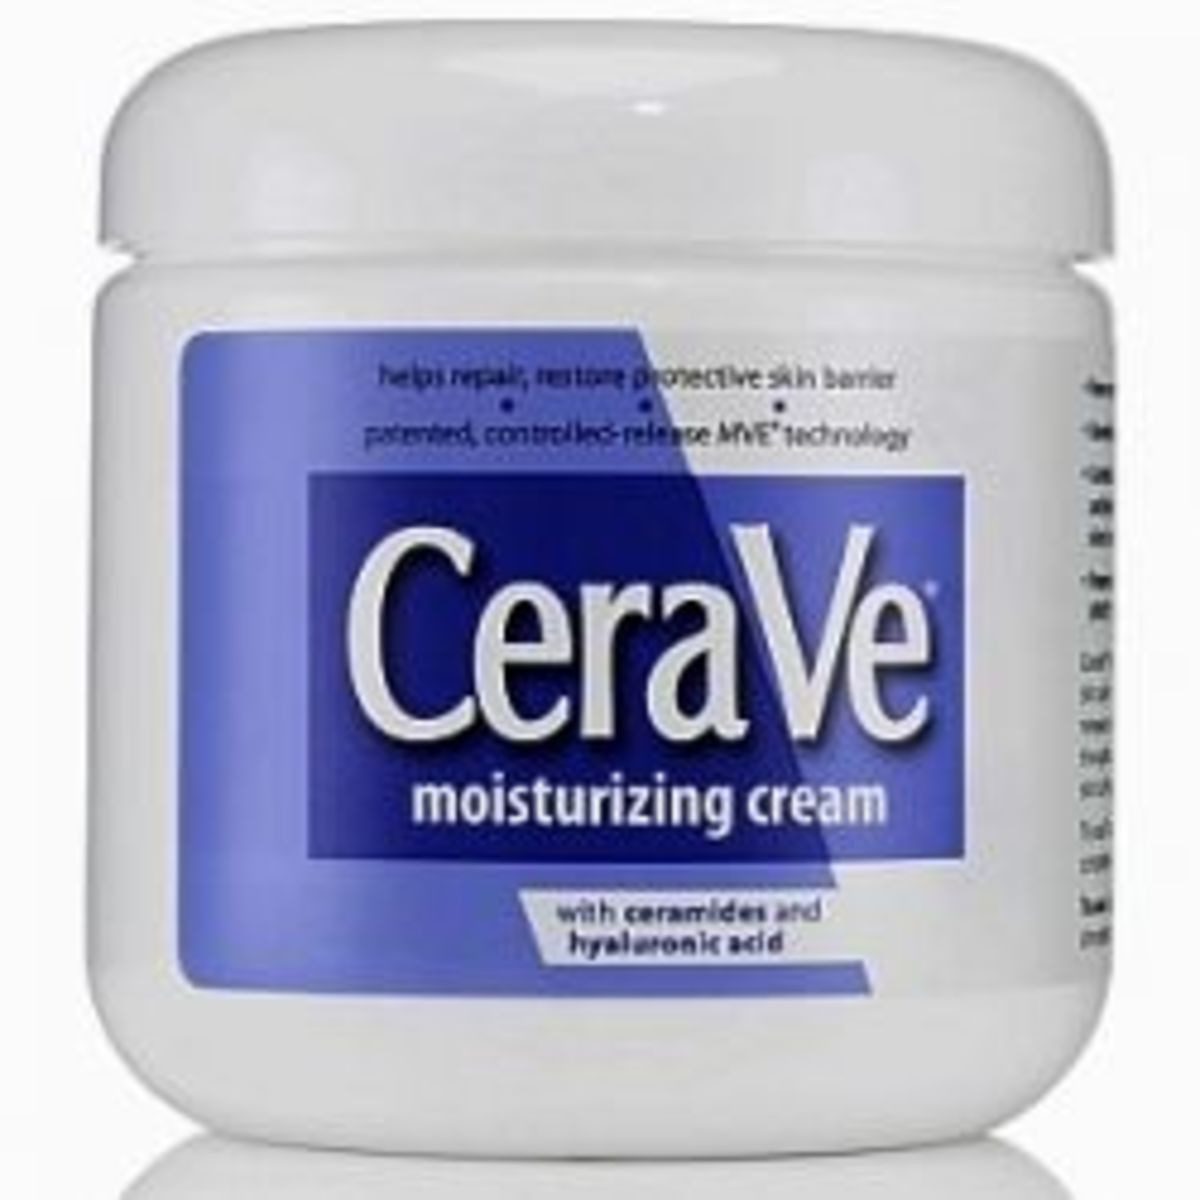 This is my favorite moisturizer.